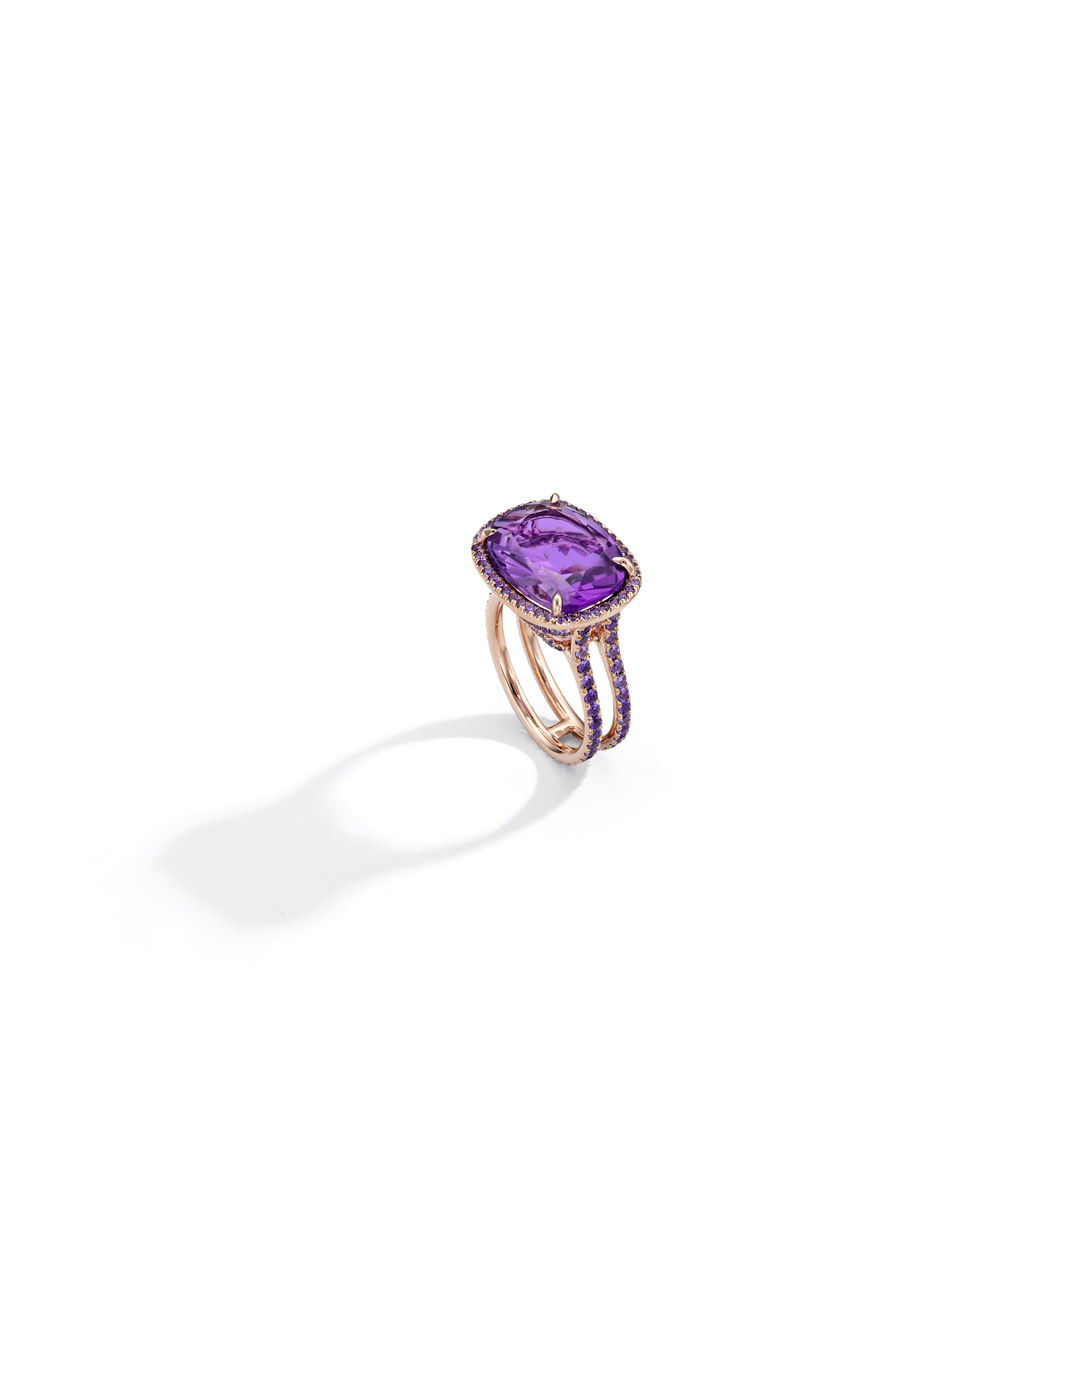 mish_products_rings_Arden-Plychrm Tourm-Ring-7